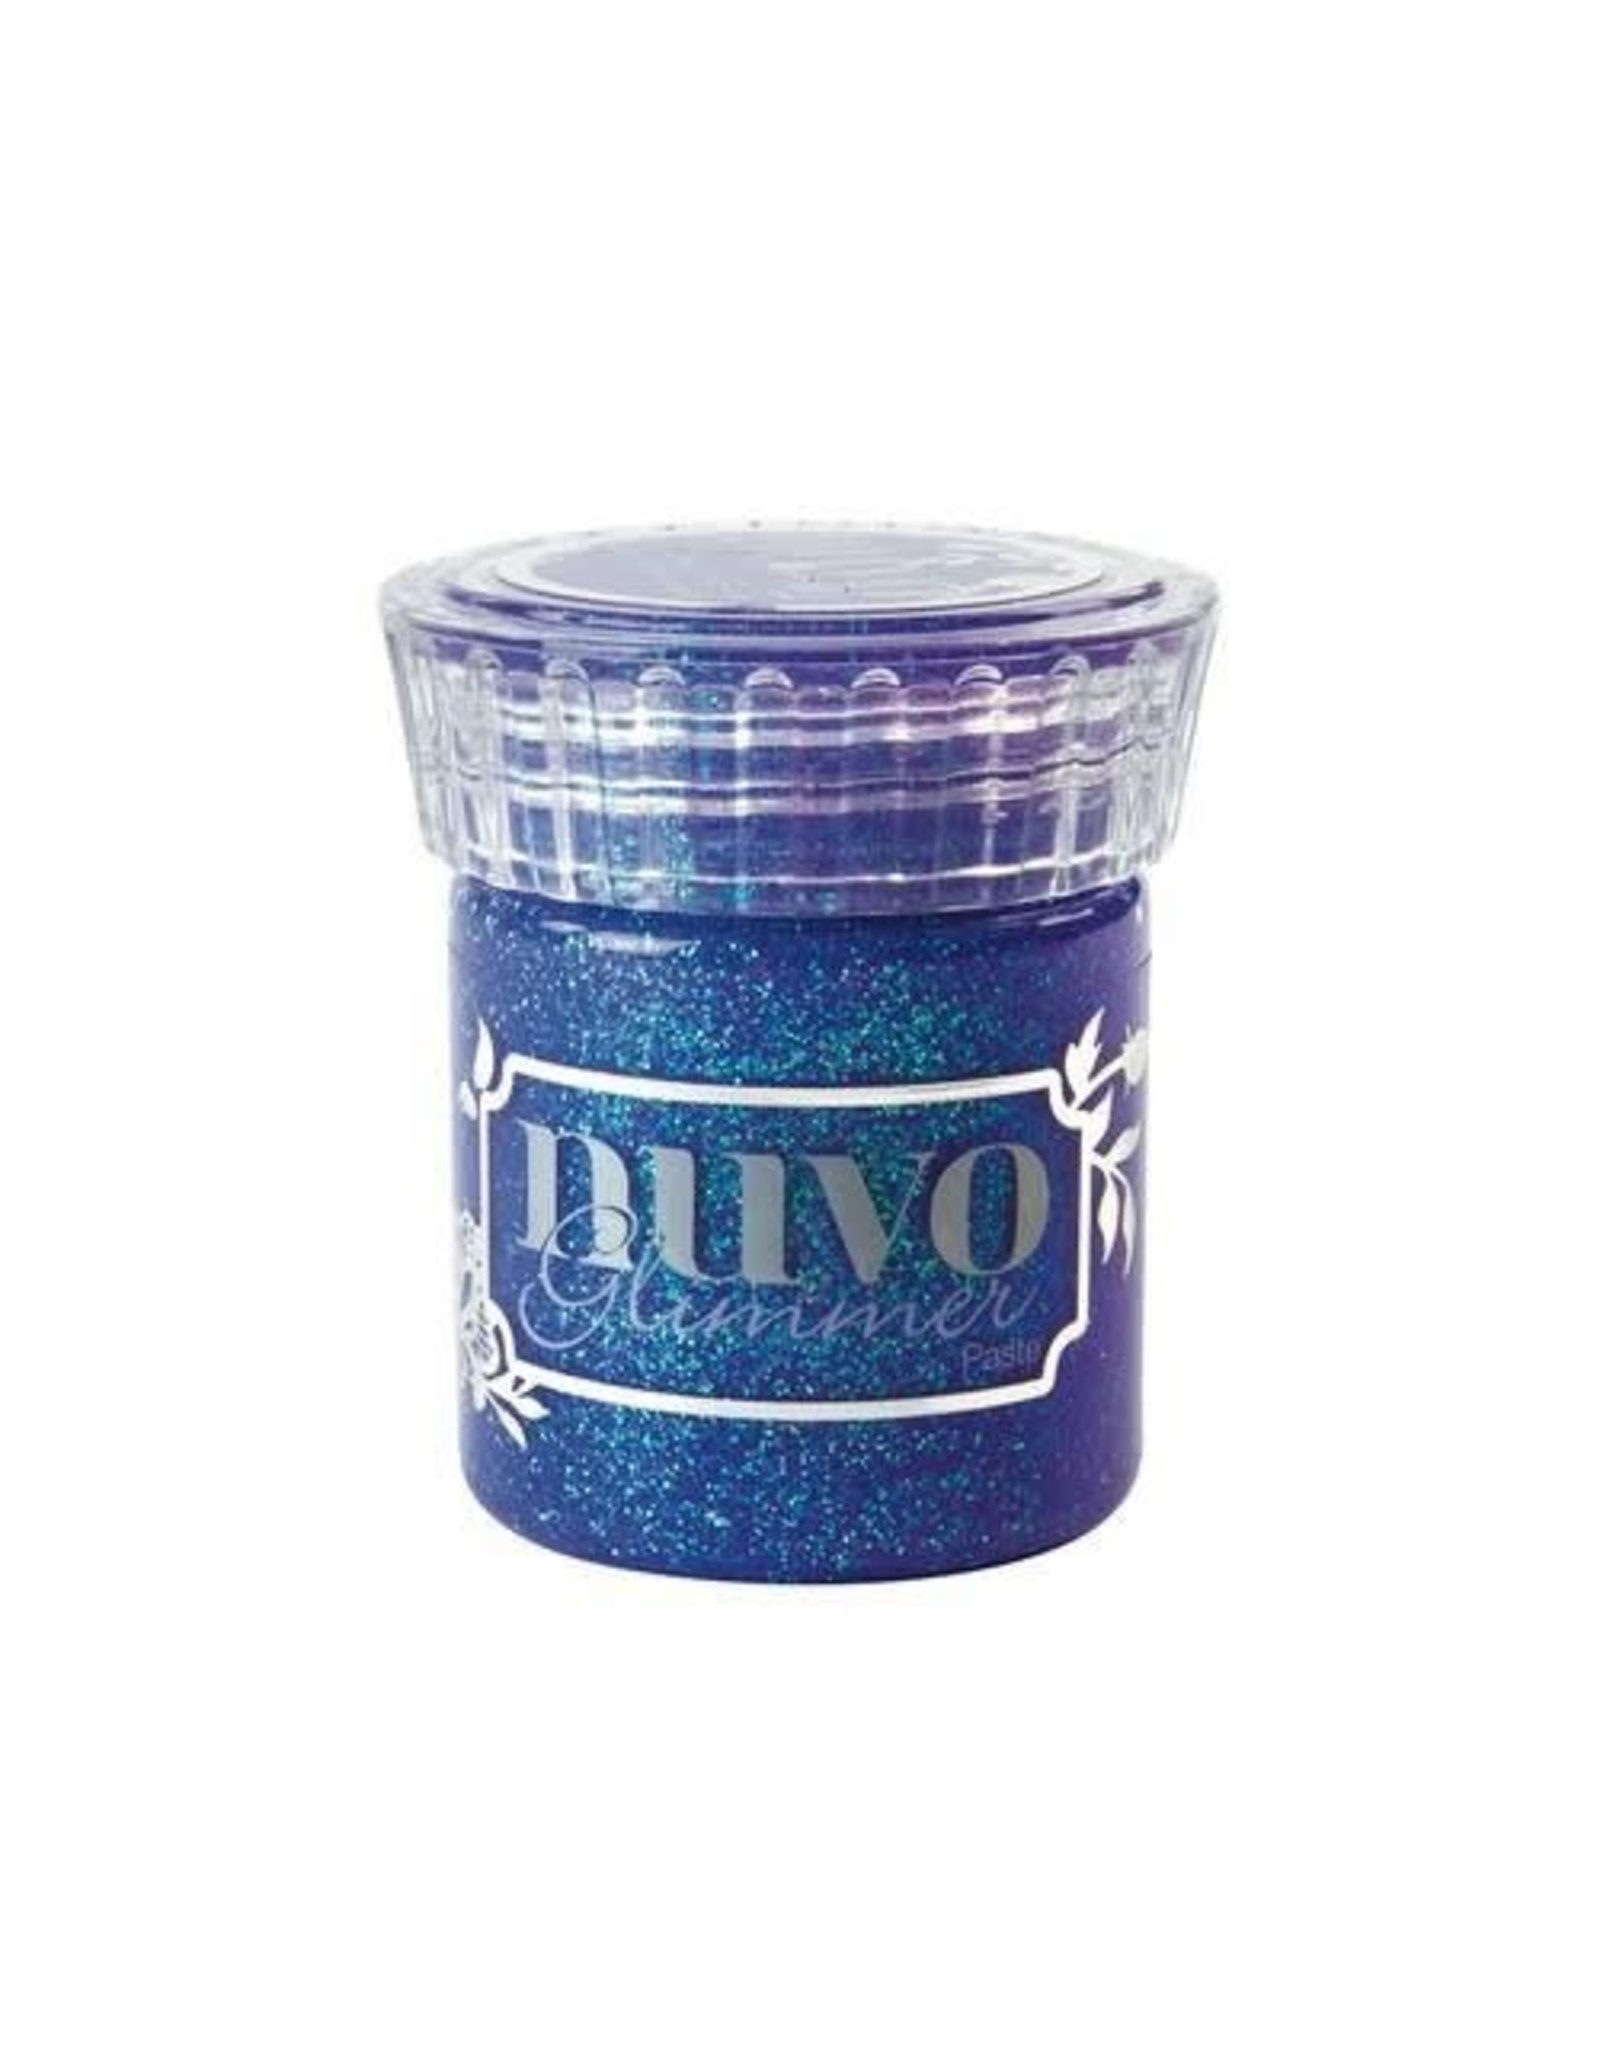 Nuvo by tonic Nuvo glimmer paste - tanzanite lavender 959N